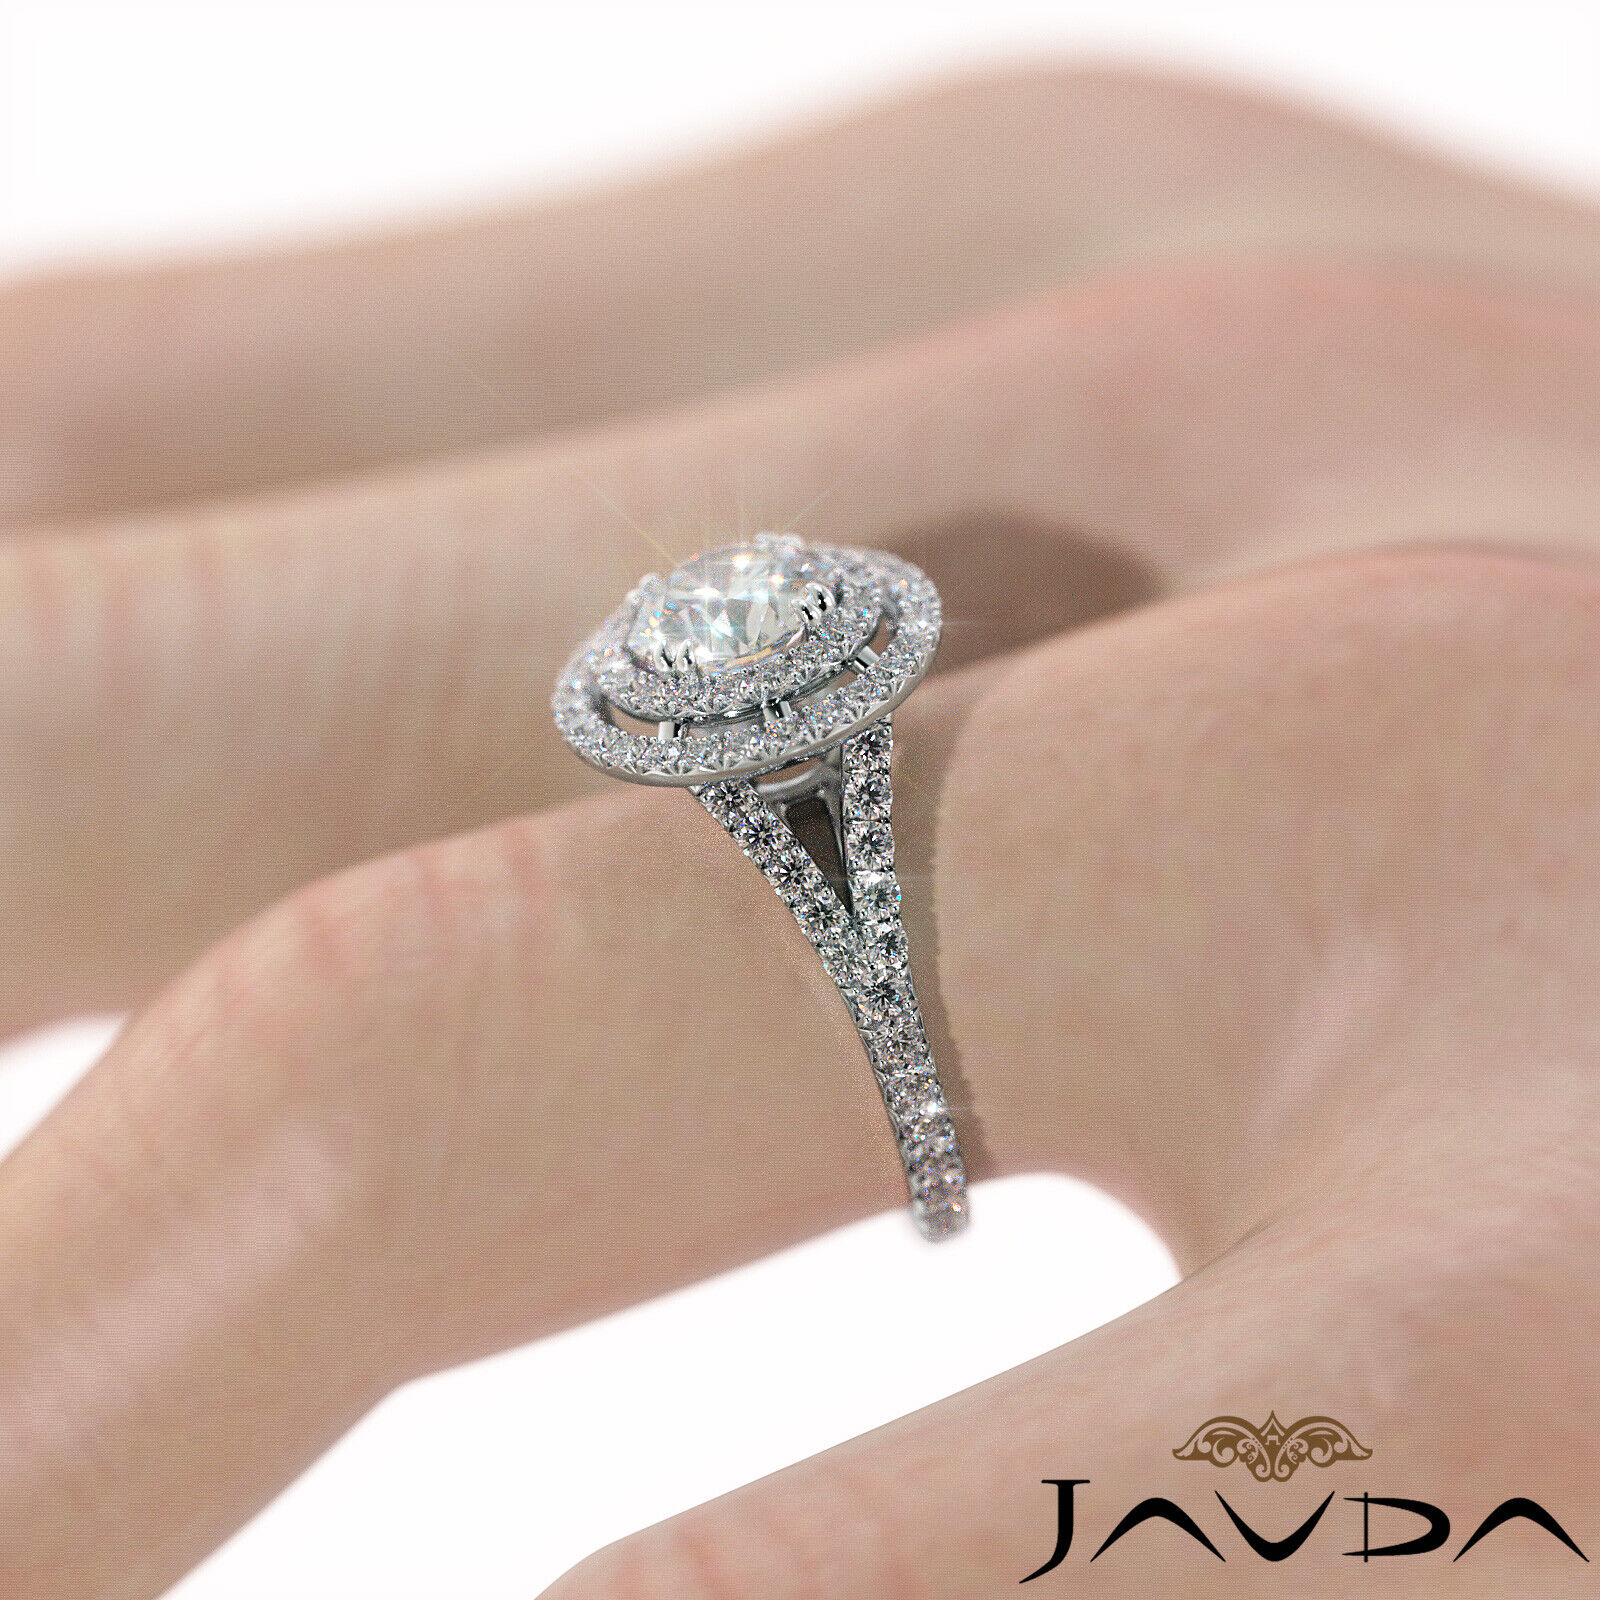 2.05ct French Pave Gala Halo Round Diamond Engagement Ring GIA F-VVS1 White Gold 5